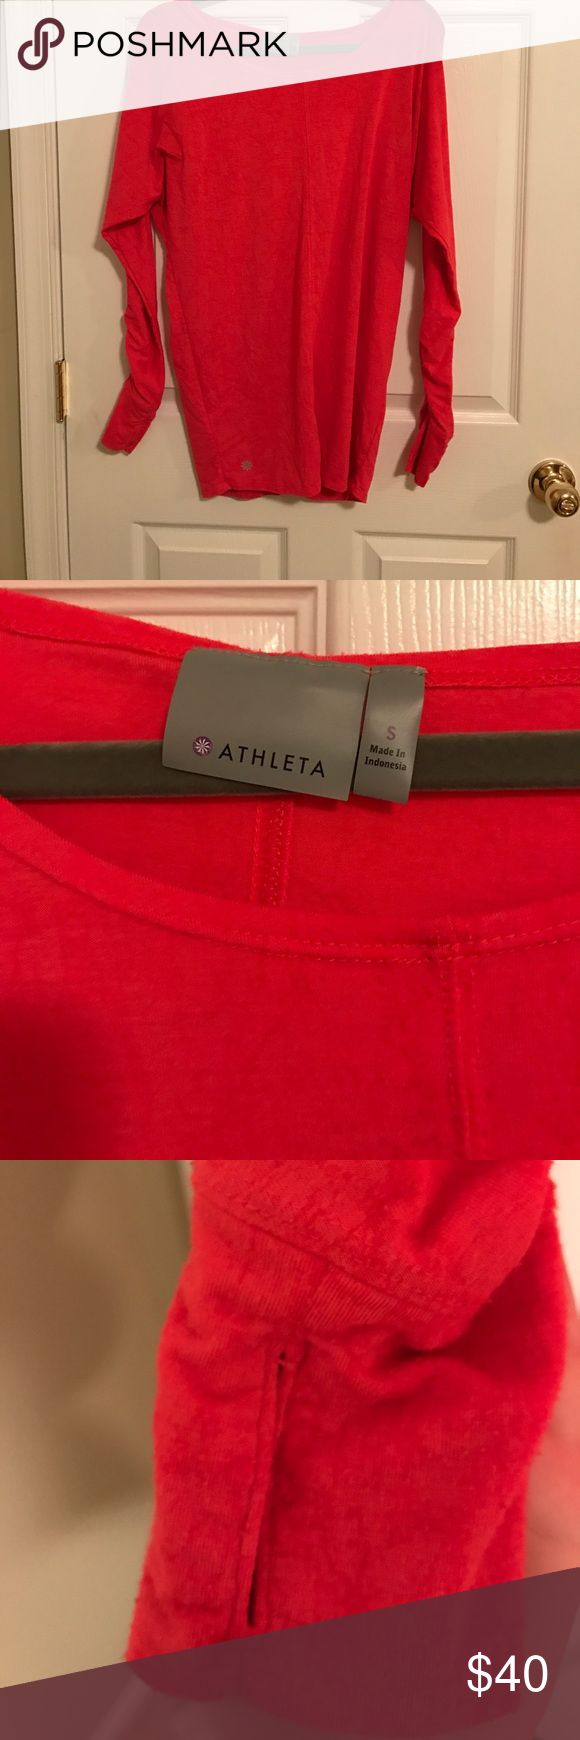 Athletes pick long sleeved top with thumb holes Athleta (Gap company) pink work out top with thumb holes. Light material, very comfortable! Great for a run or walk on a nice spring day! Women's size small, great quality. Rarely worn, no tags Athleta Tops Tees - Long Sleeve